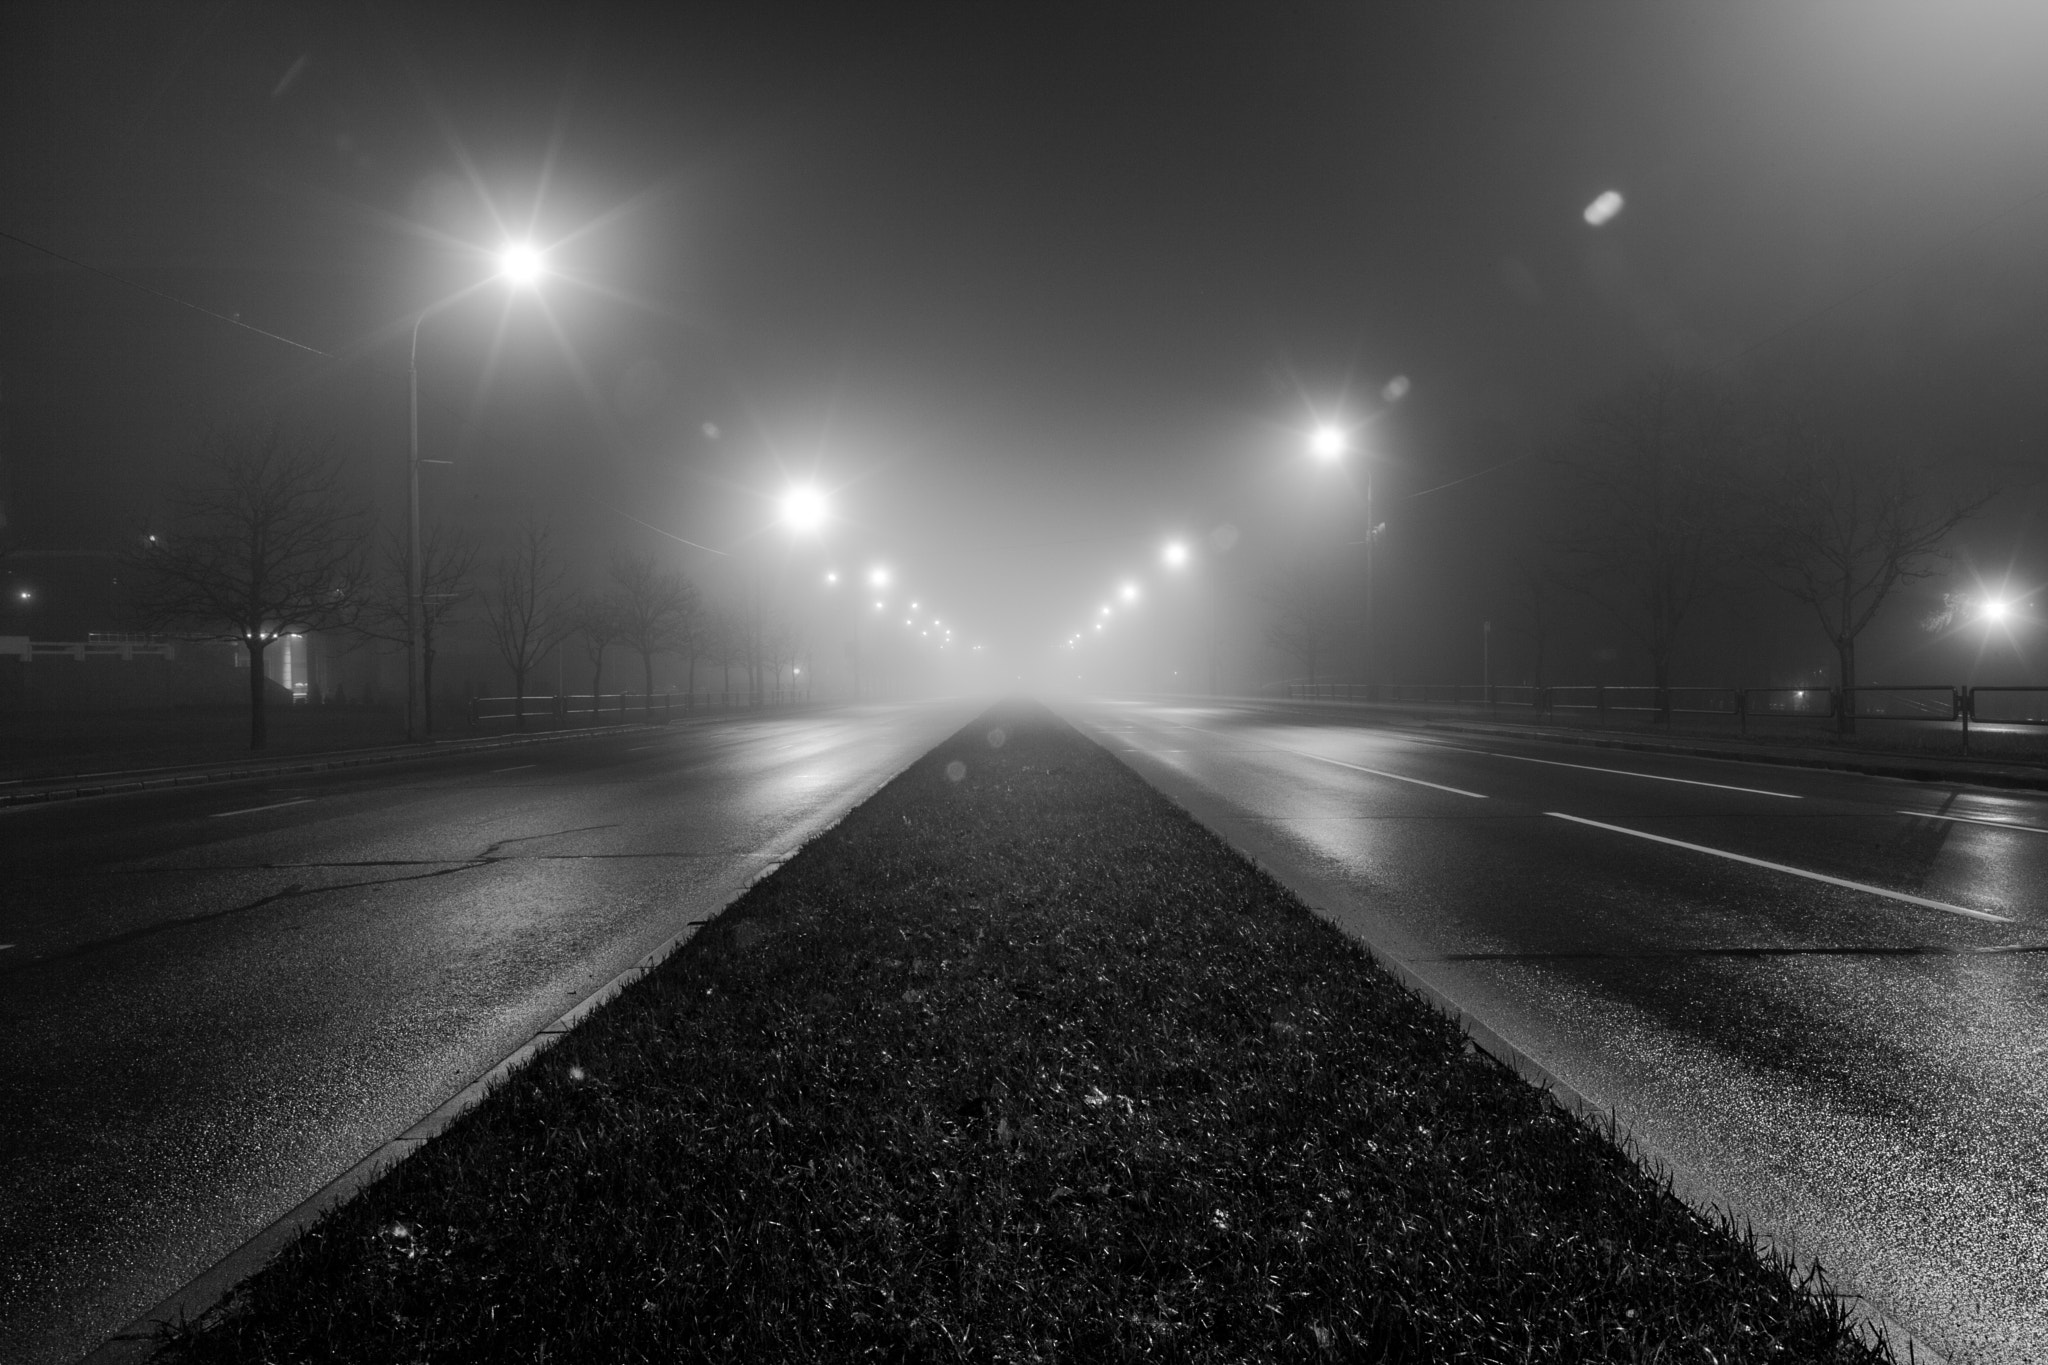 Photograph Foggy Urban Road At Night by Max Kontramax on 500px